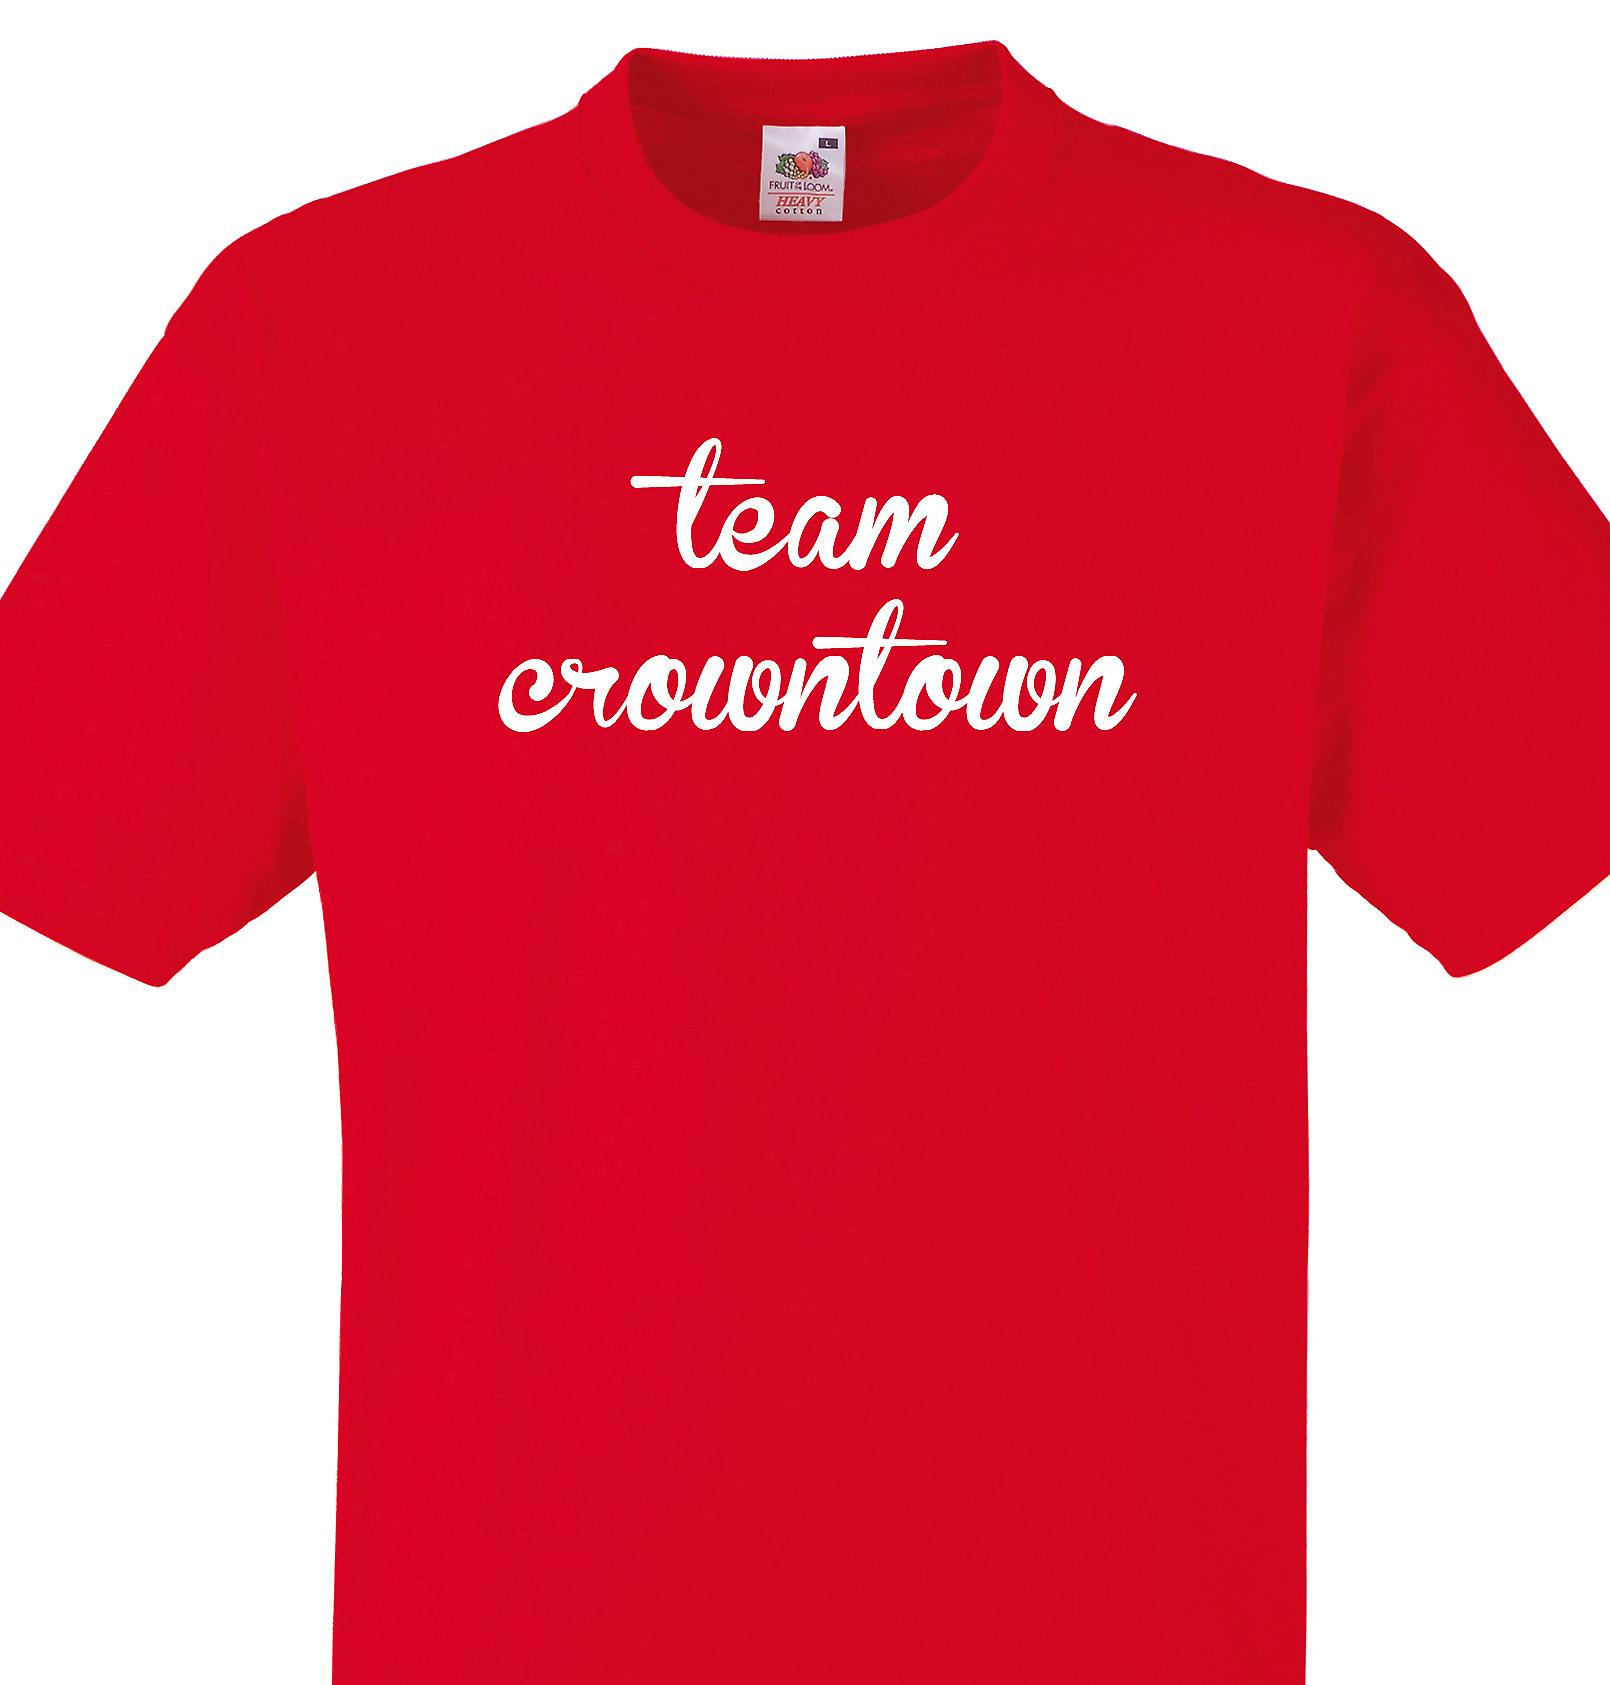 Team Crowntown Red T shirt